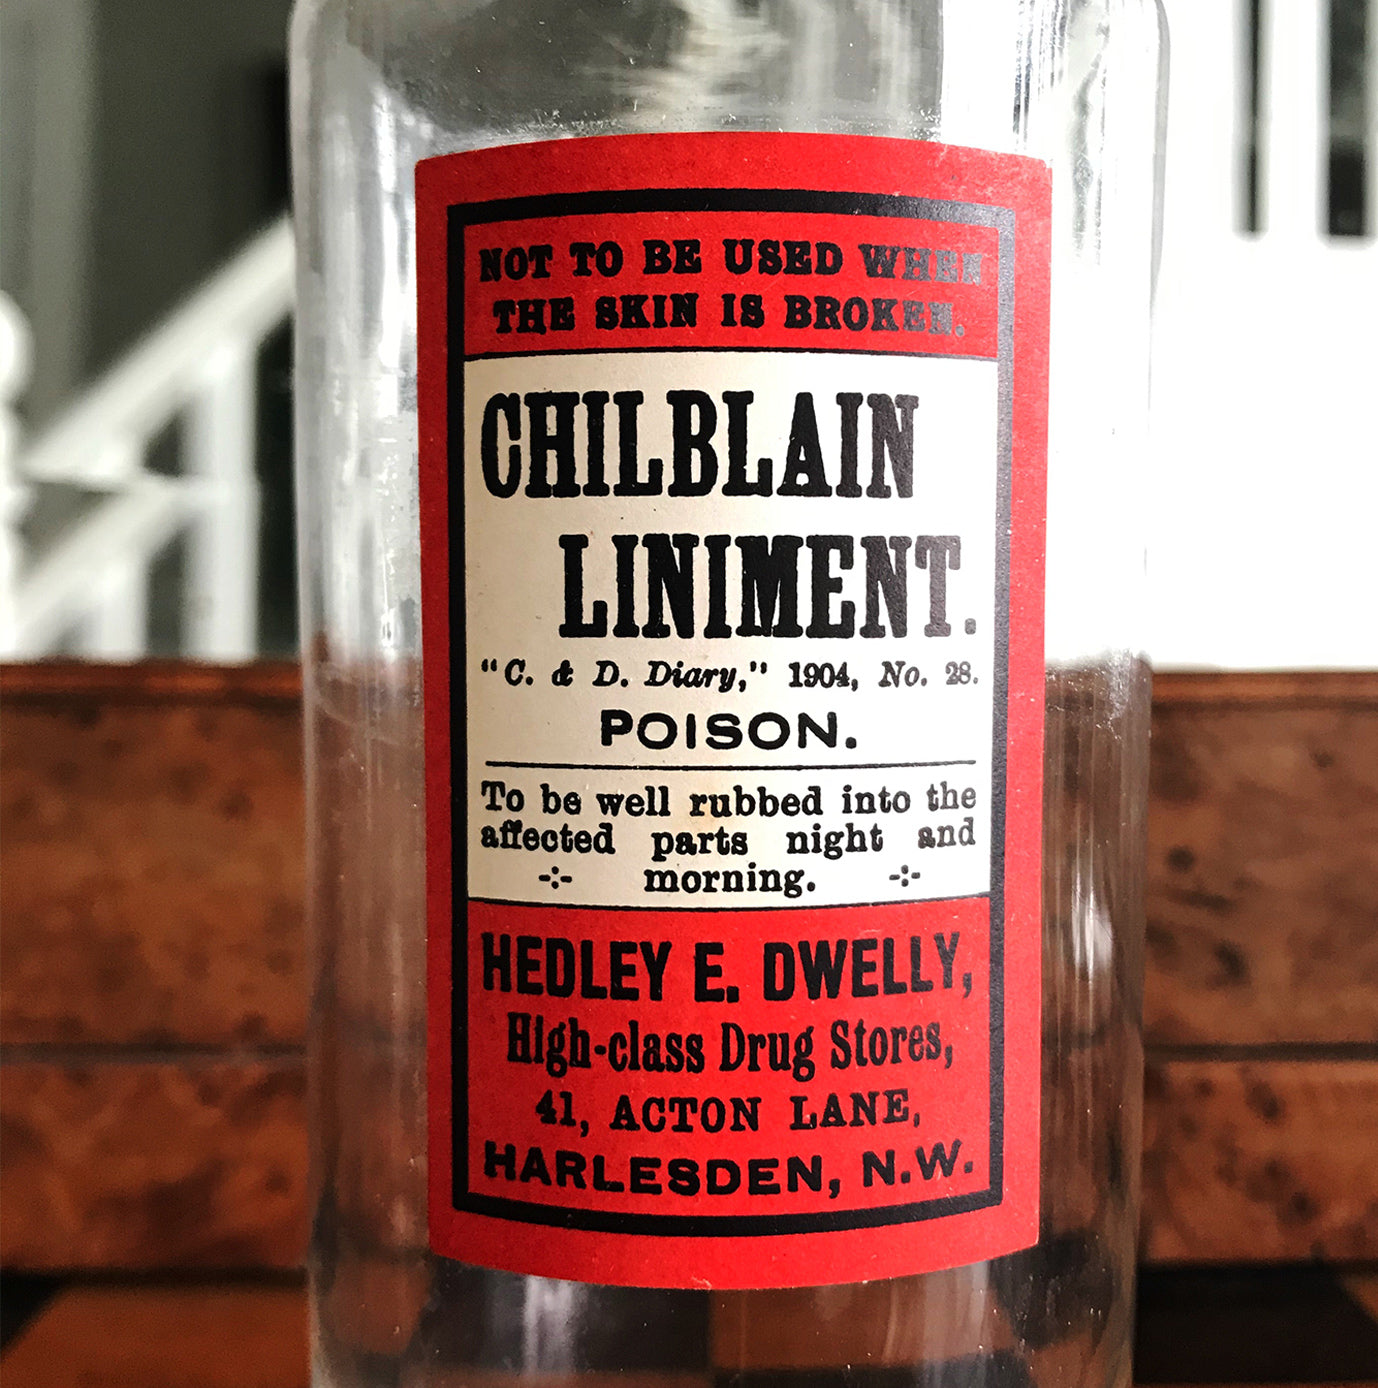 Vintage Apothecary Bottle with an original paper Poison label for Chilblain Liniment, Poison from Hedley E. Dwelly, High-Class Drug Stores, 41, Acton Lane, Harlesden. N.W. London - SHOP NOW - www.intovintage.co.uk